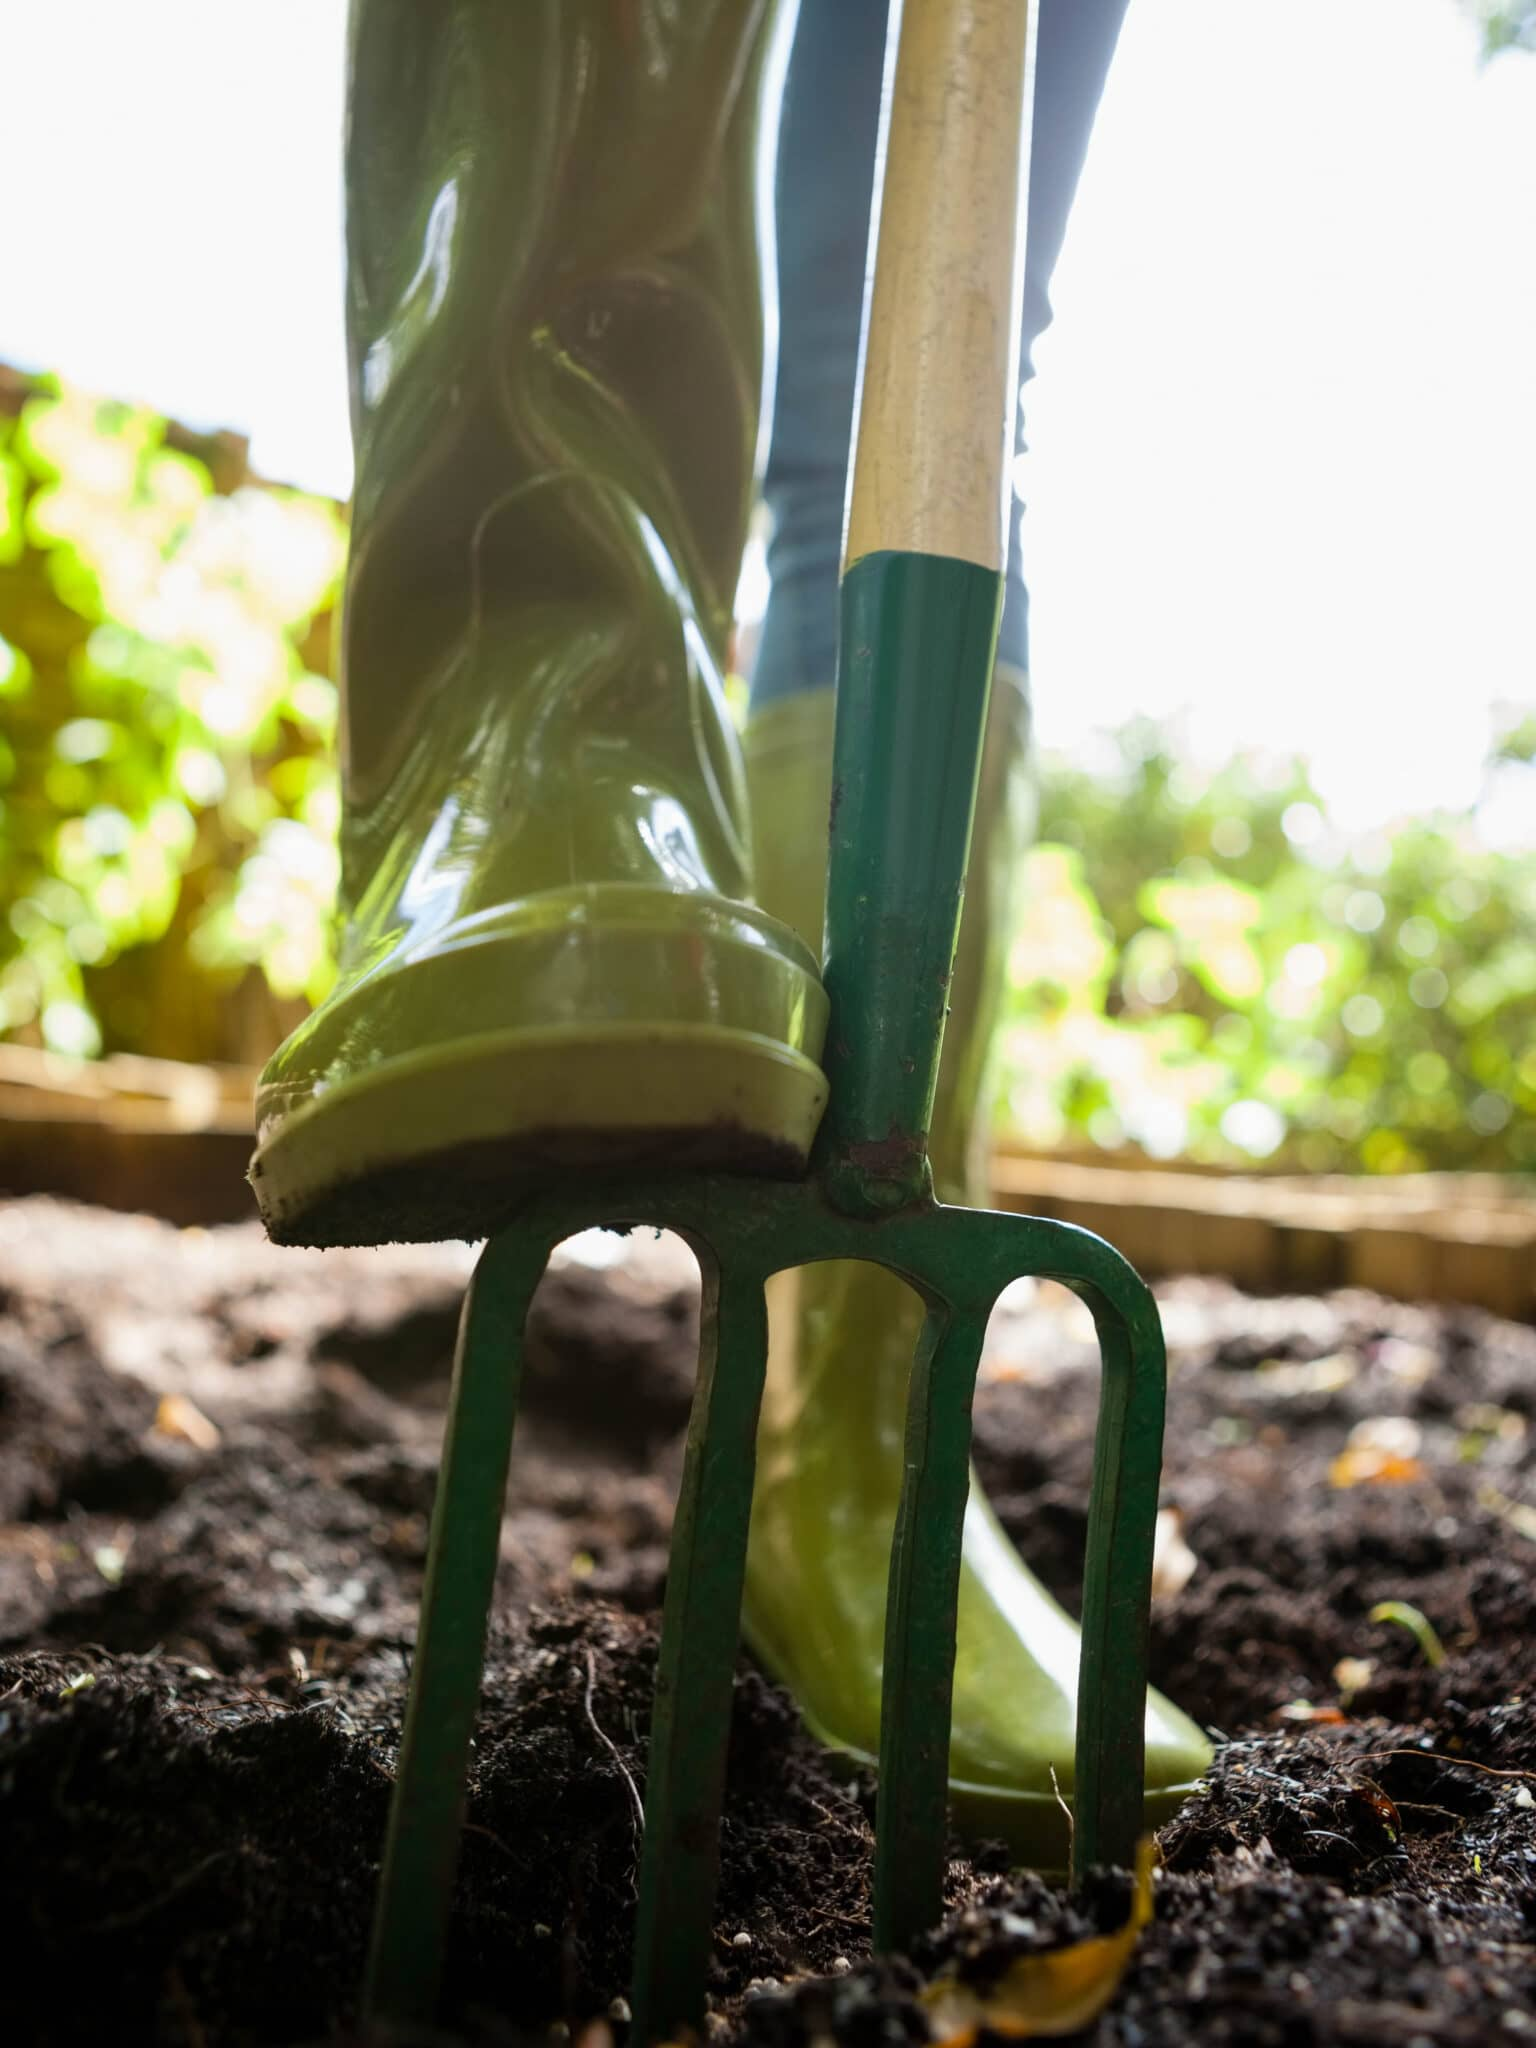 A pitchfork being pushed into the soil by a gardener's foot.